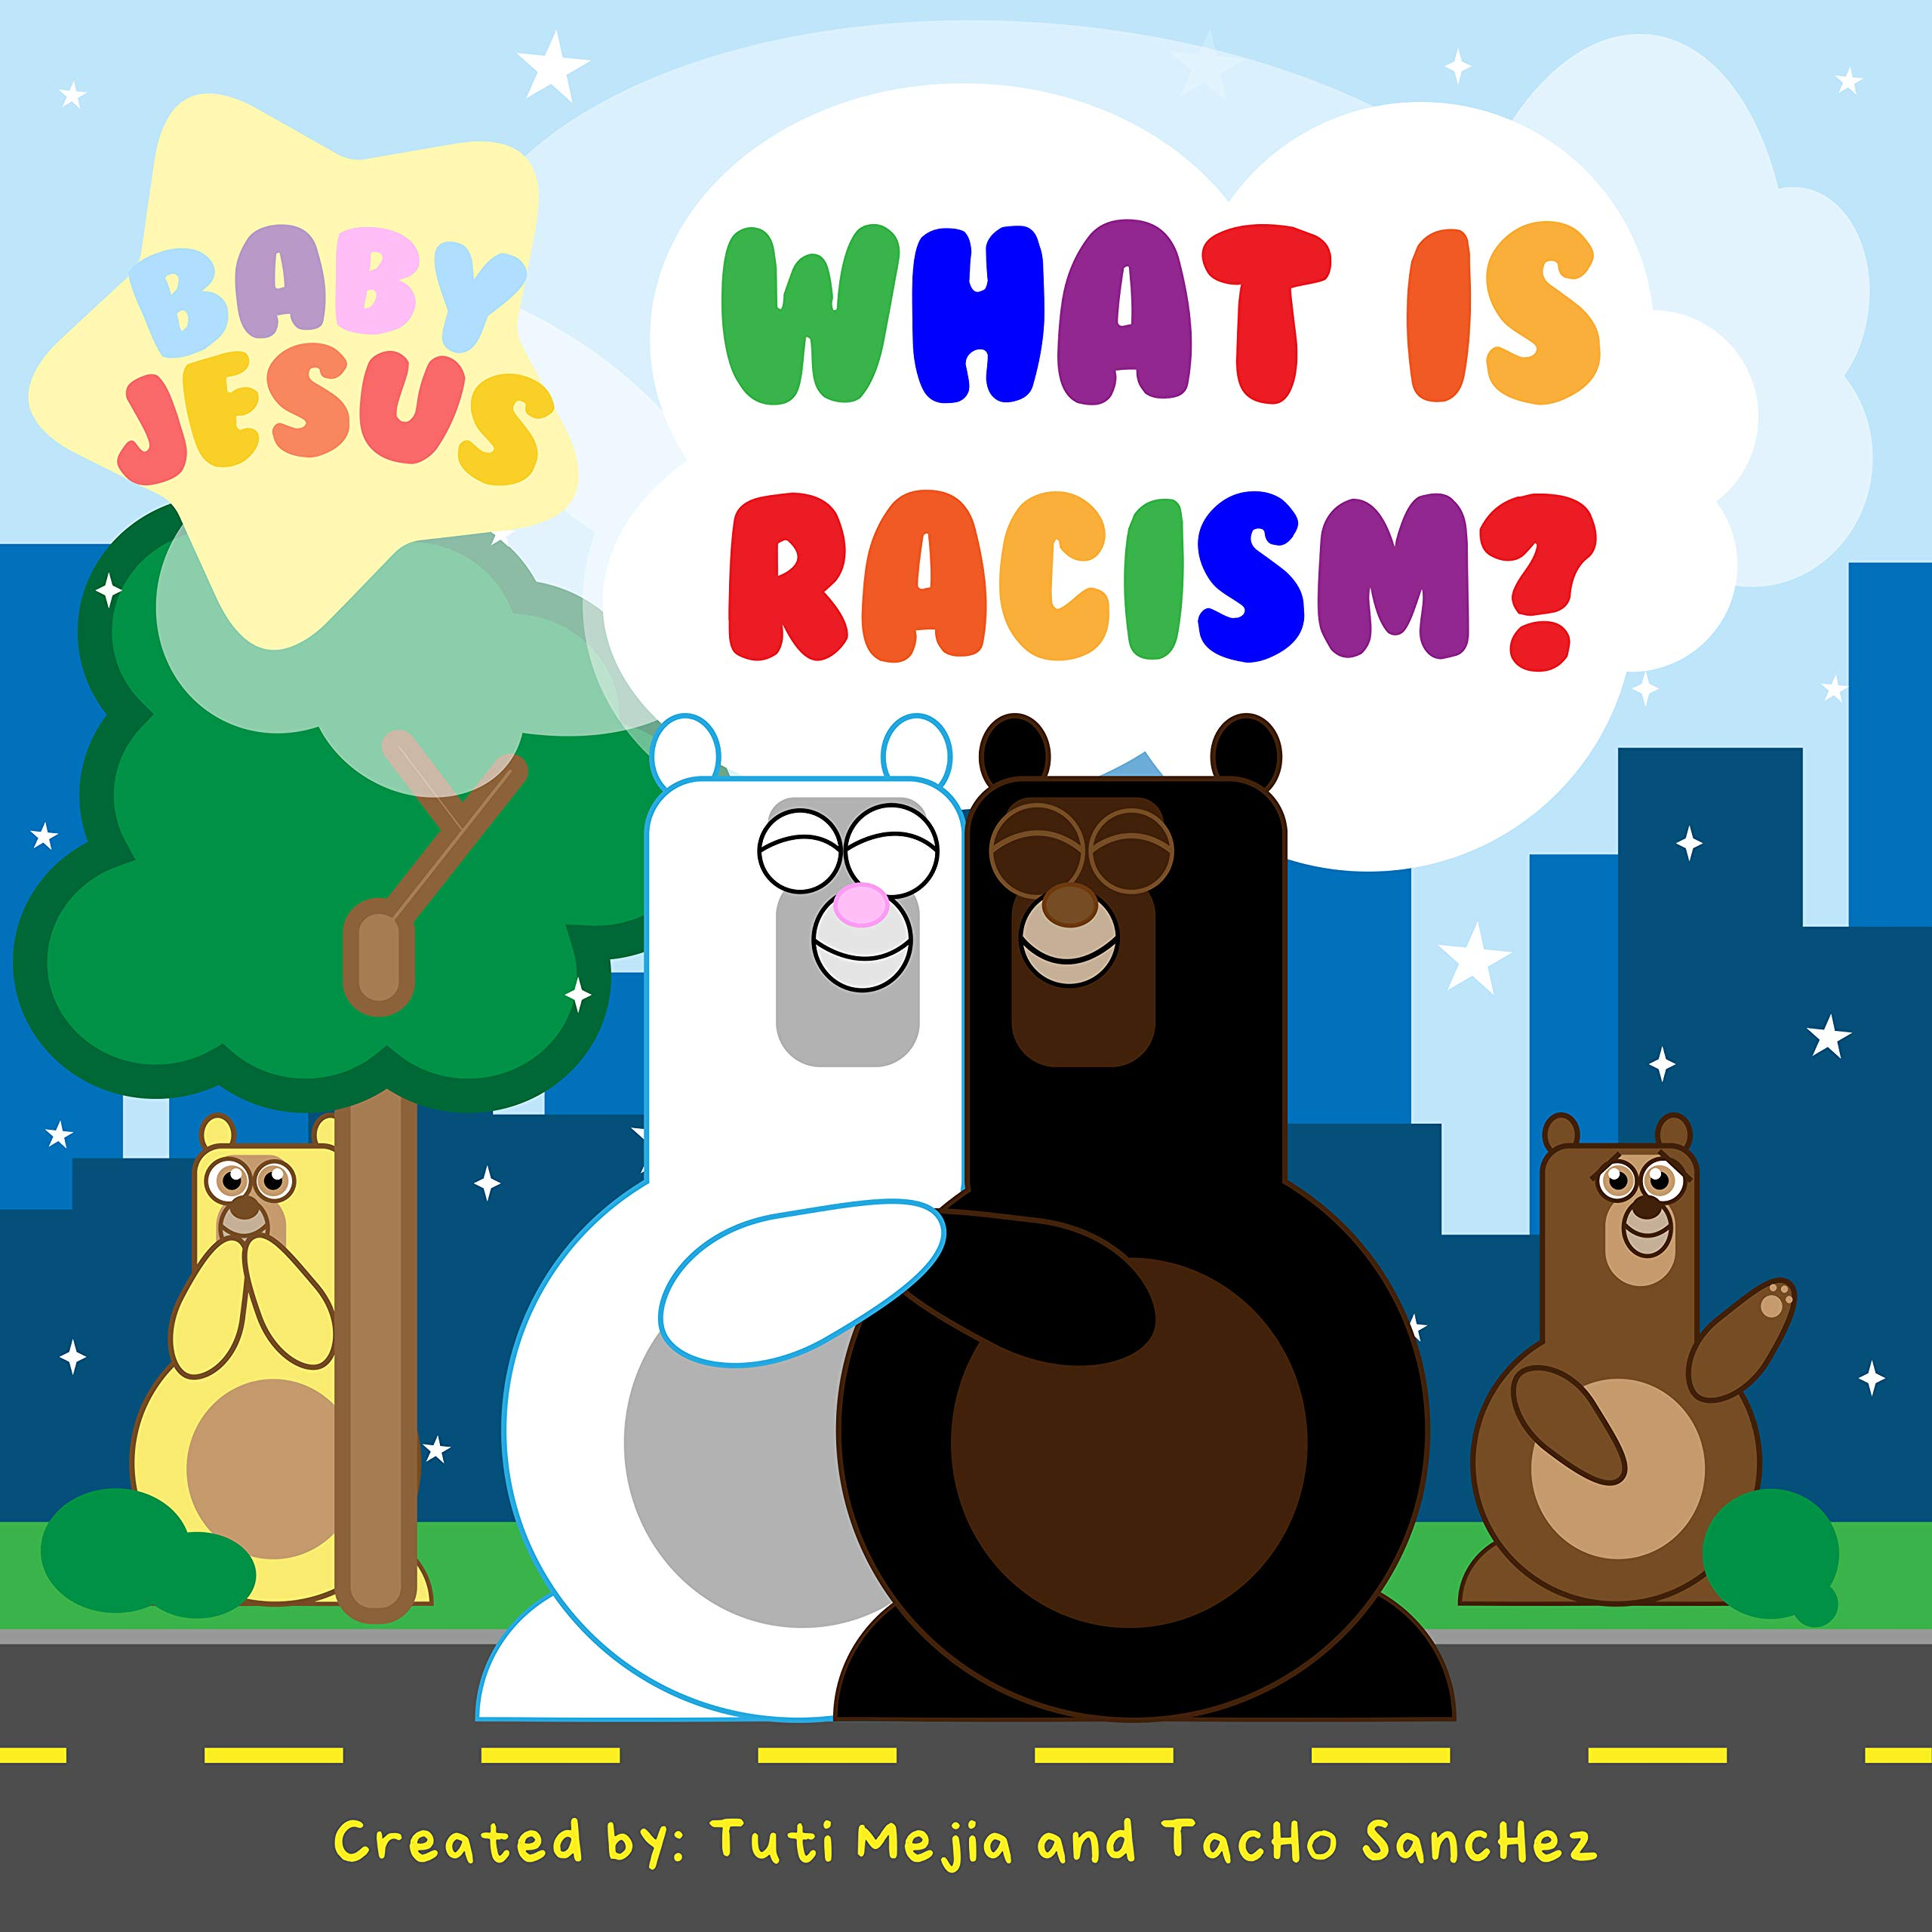 Baby Jesus What is Racism?: Let's be kind to each other! (3)